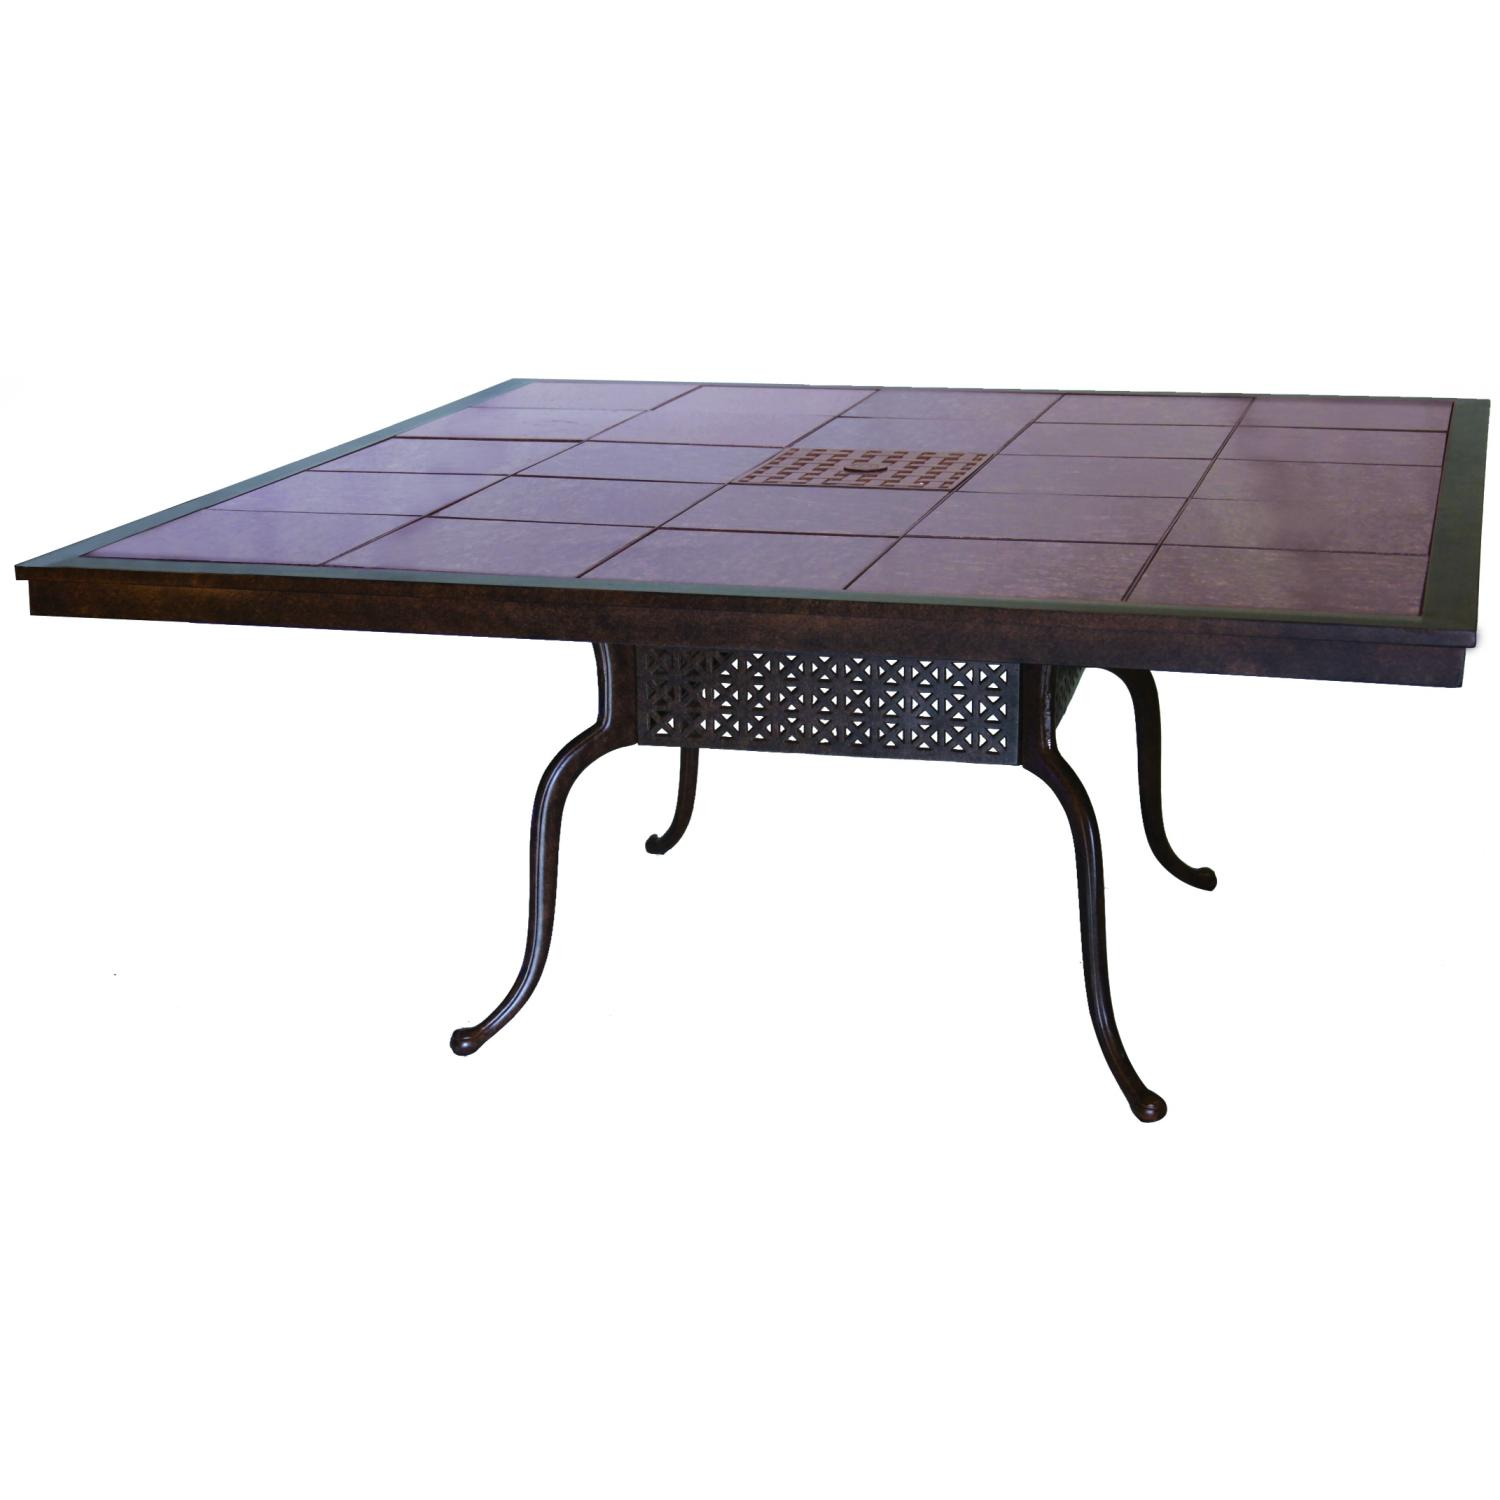 Darlee Series 77 Cast Aluminum Patio Dining Table With Granite Top - Mocha / Ruby Granite Tile at Sears.com